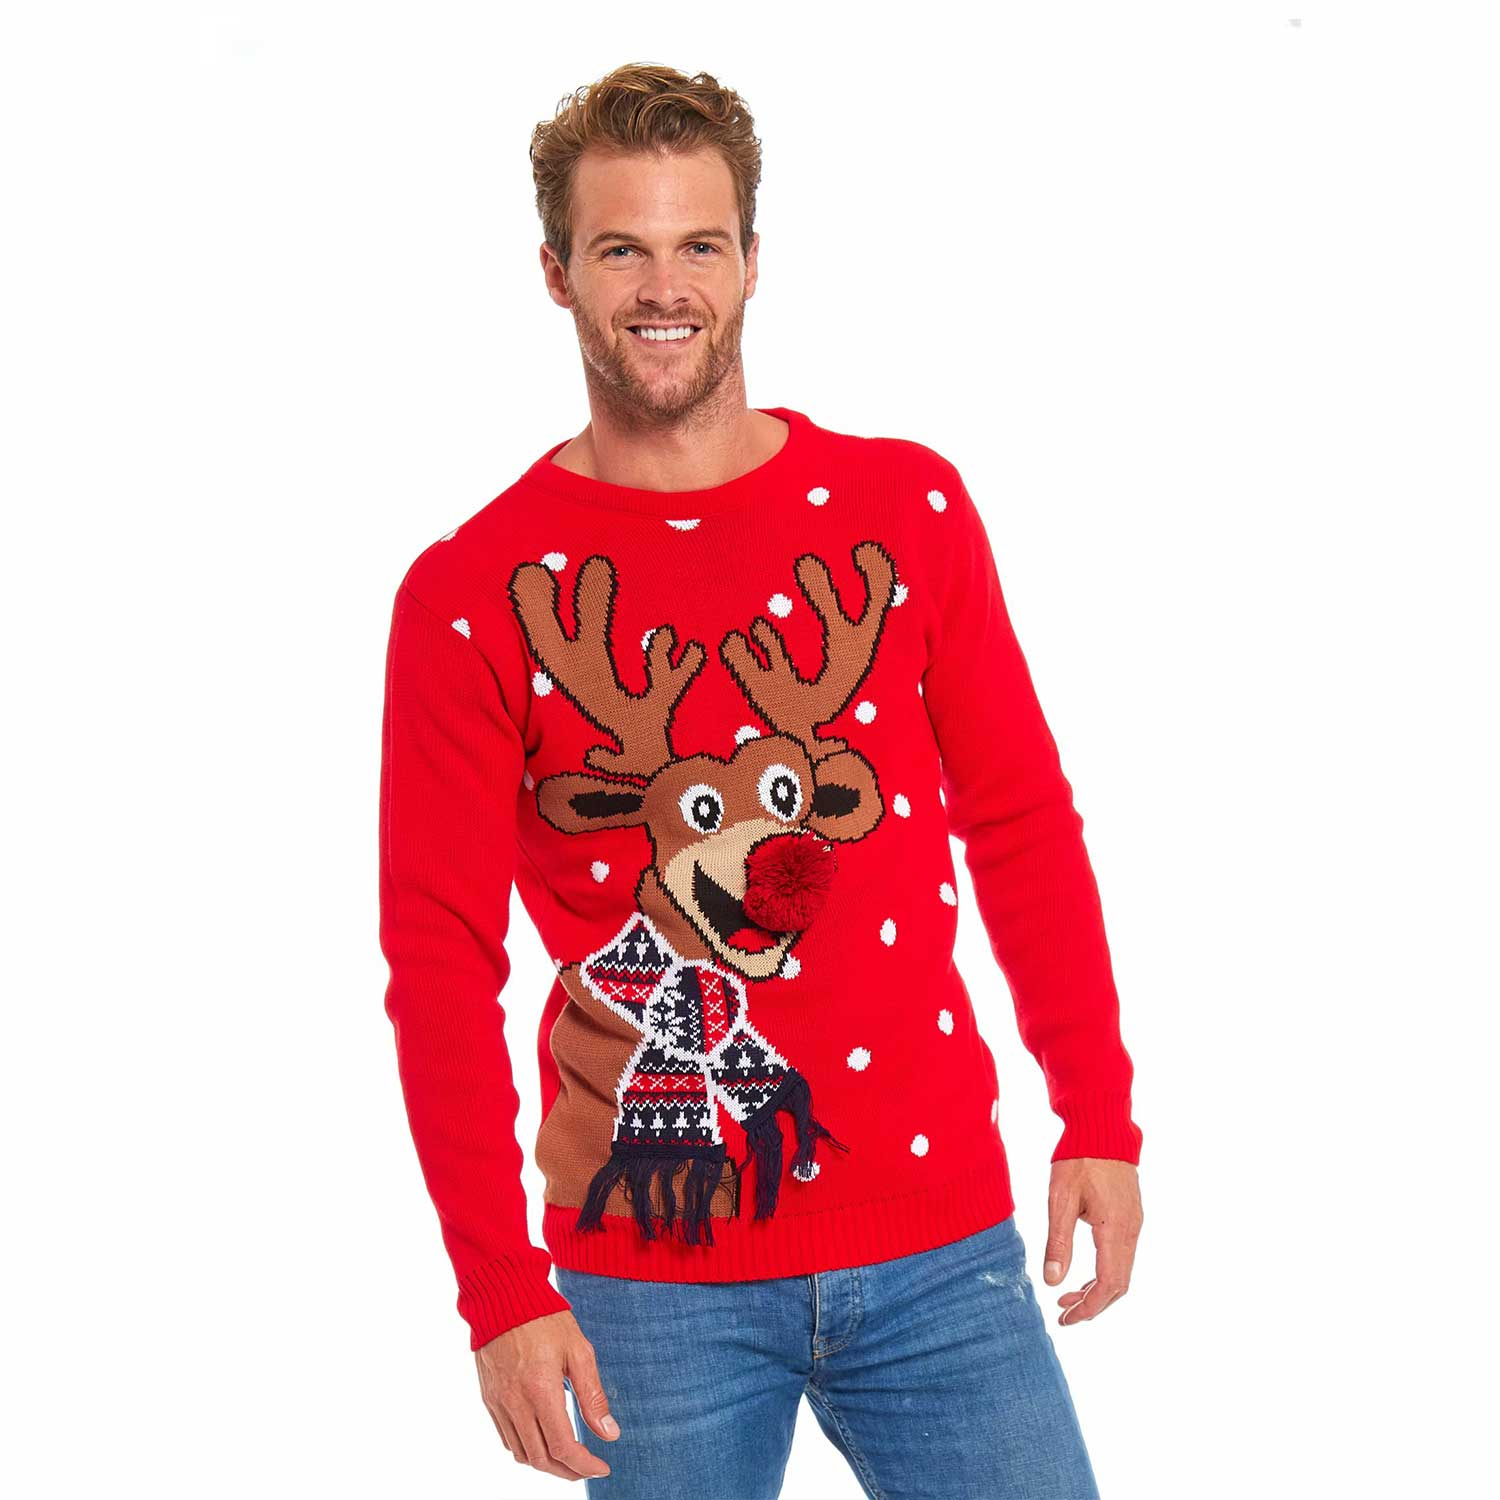 Funny Christmas Sweater.Men S Funny Christmas Sweater With Reindeer Pom Pom Nose